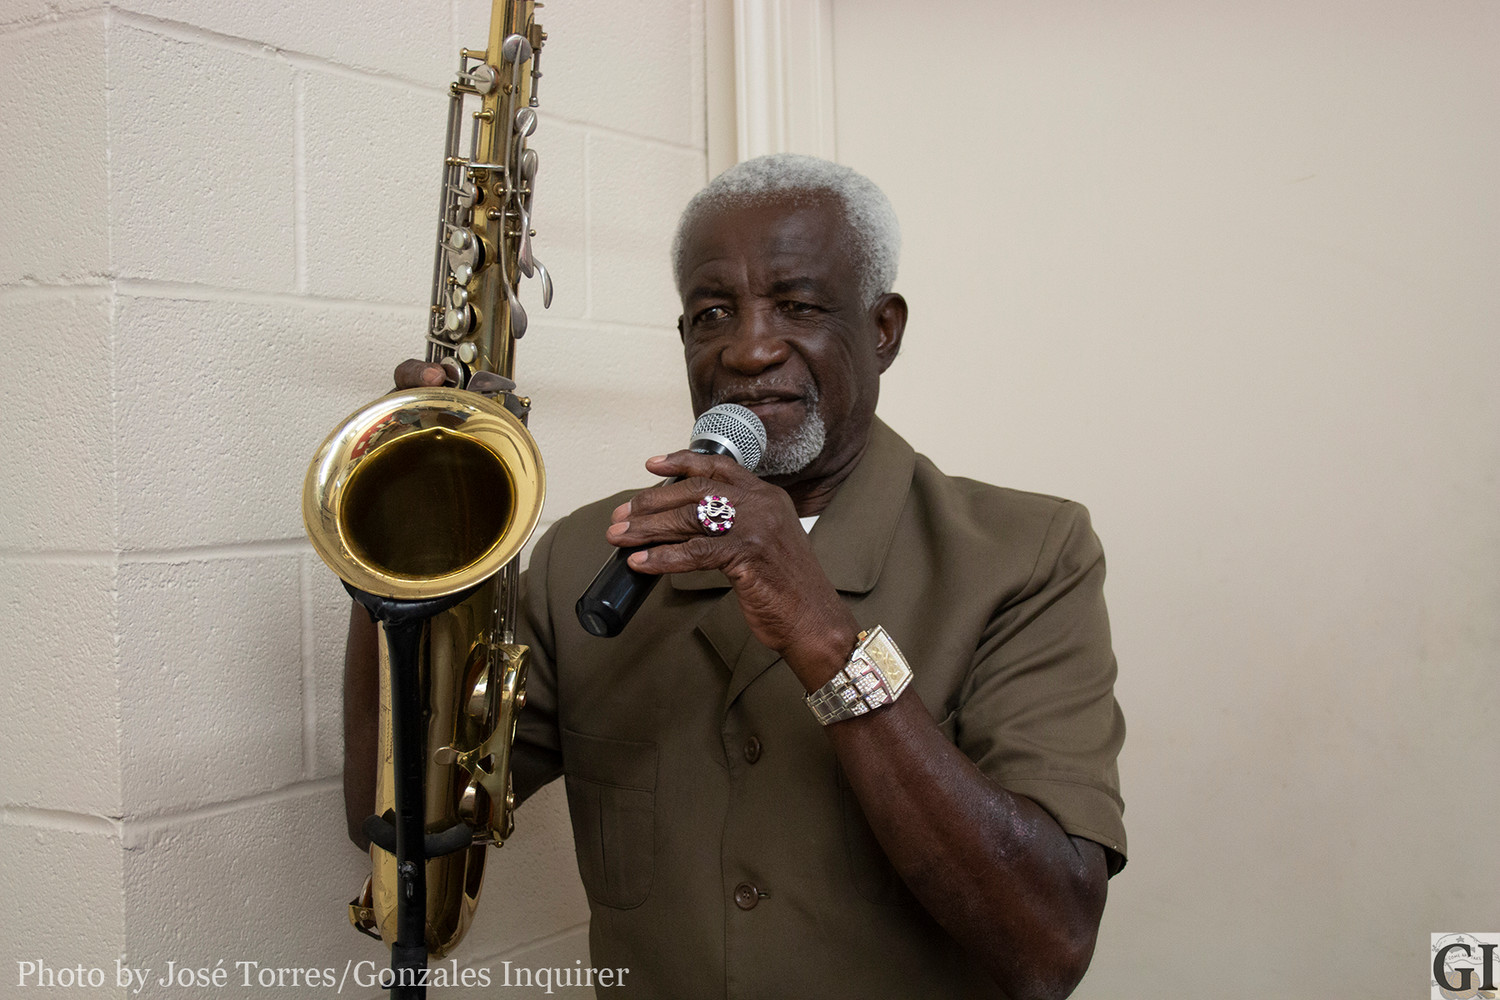 Legendary saxophone artist O.S. Grant will be performing the David Stewart Trucking Stage in Gonzales to kick off the Kenneth Stewart Trucking VIP Night at the Gonzales Inquirer's Craft Beer Festival on Confederate Square.